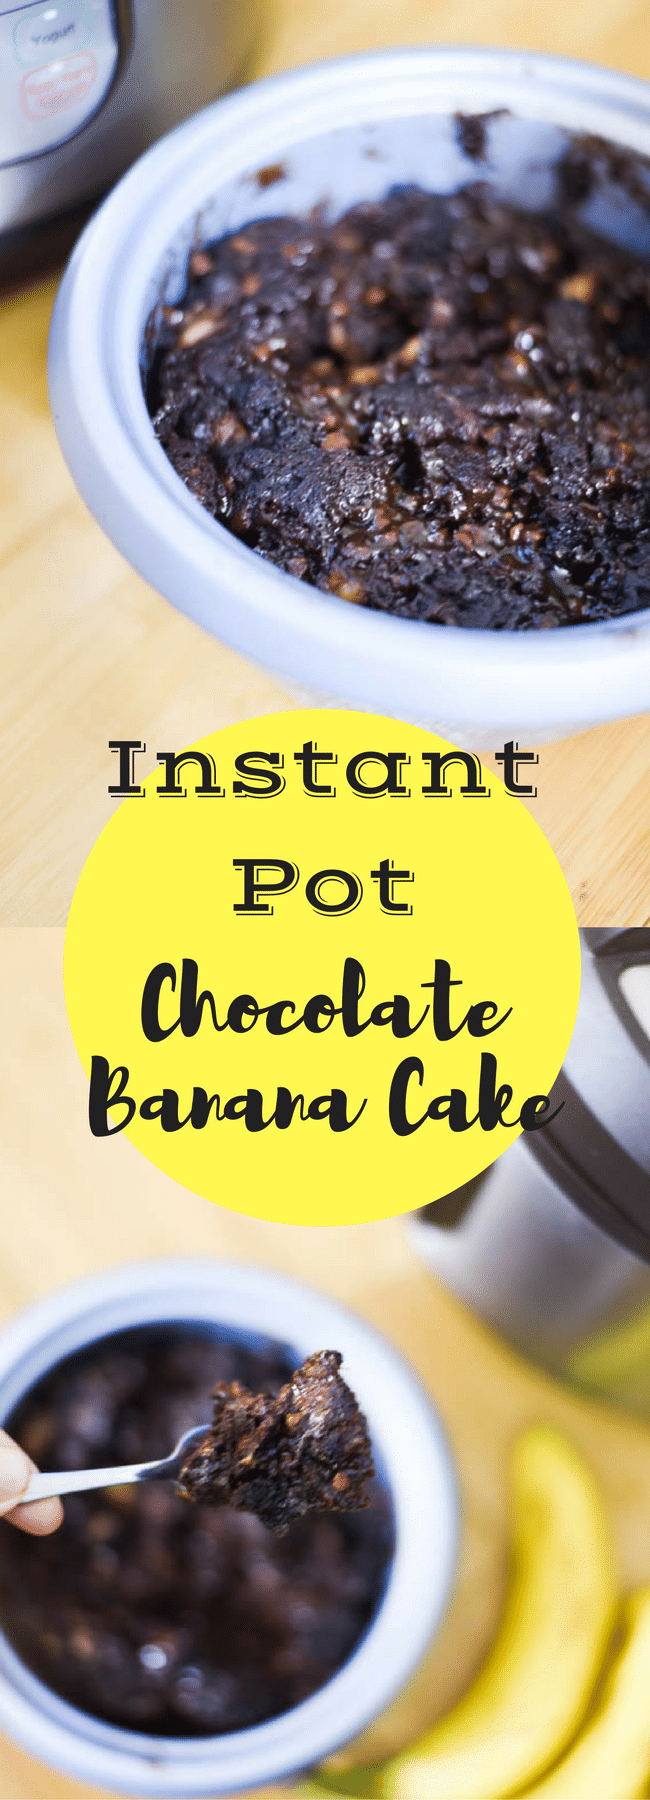 Instant Pot Chocolate Banana Cake / Instant Pot Recipes / Instant Pot Desserts / Instant Pot Quick Breads / Instant Pot Ideas via @clarkscondensed